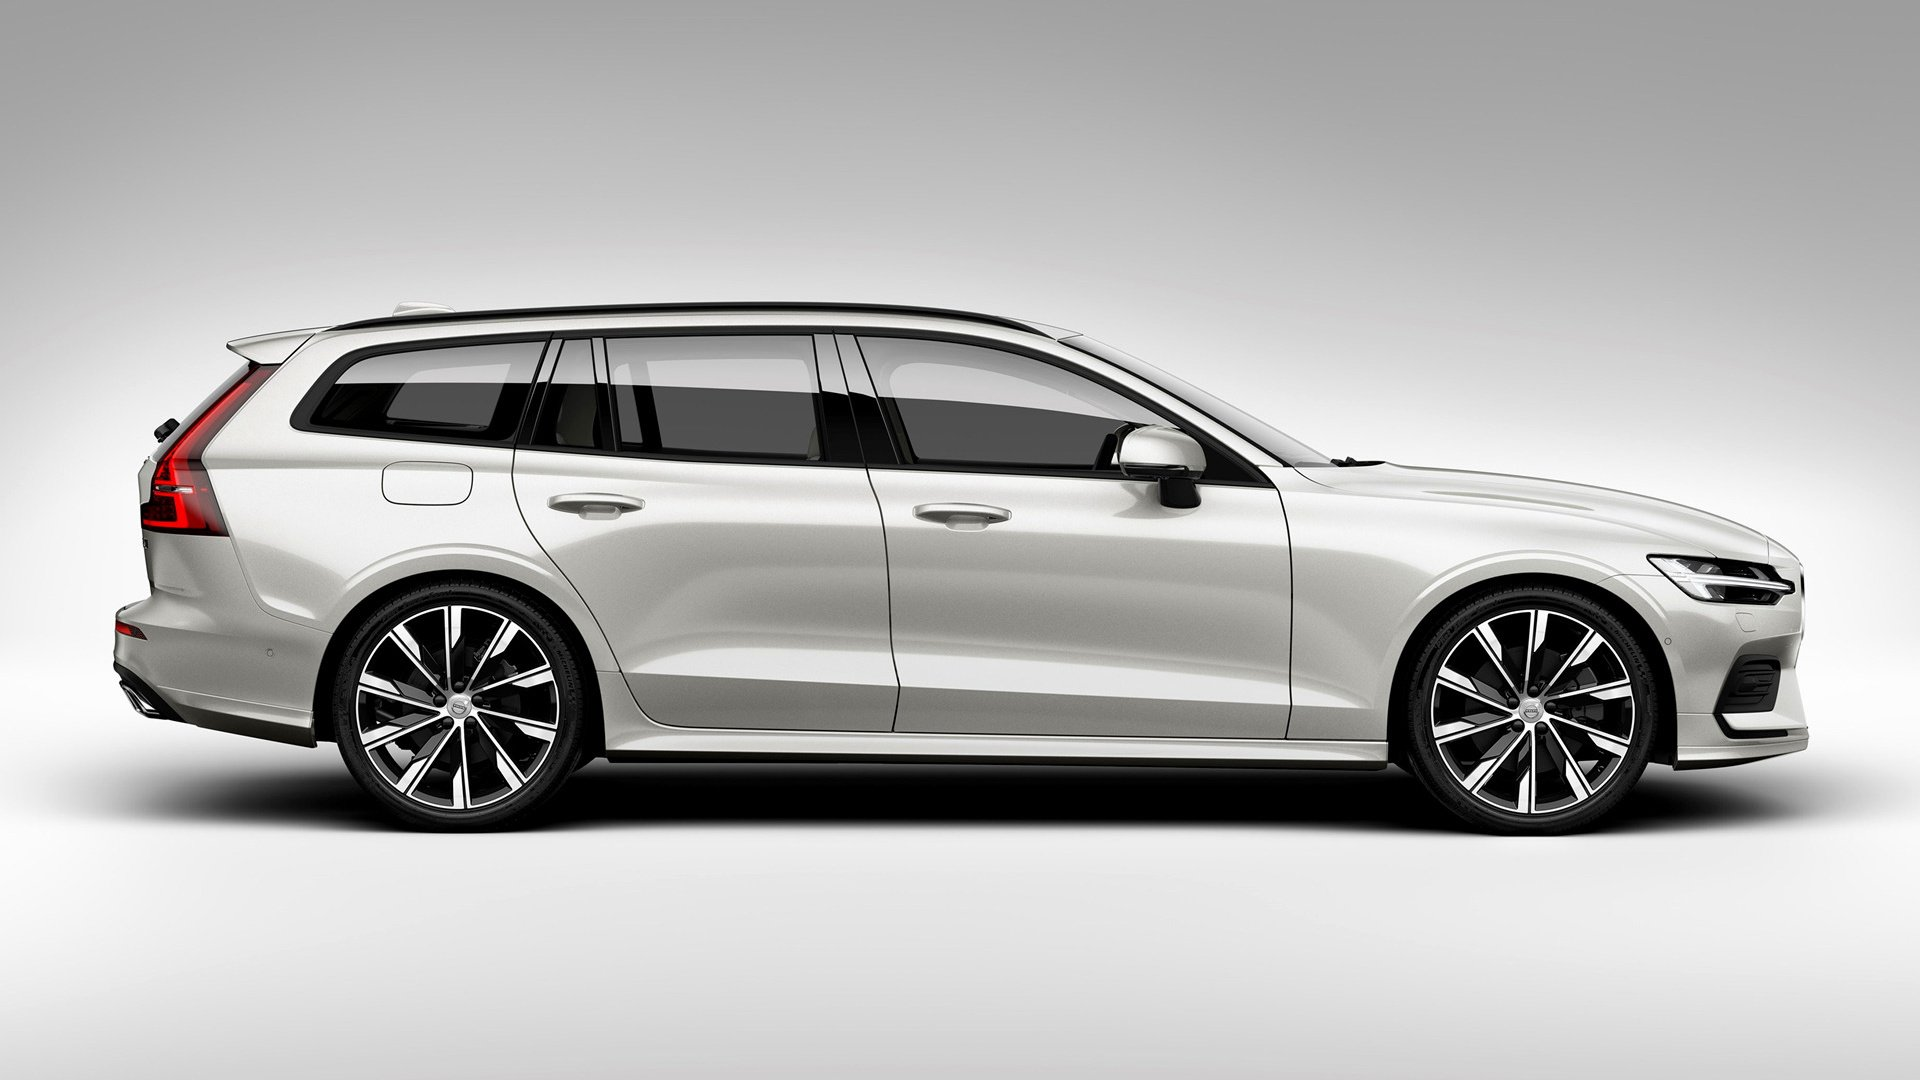 2018 Volvo V60 HD Wallpaper Background Image 1920x1080 ID 1920x1080